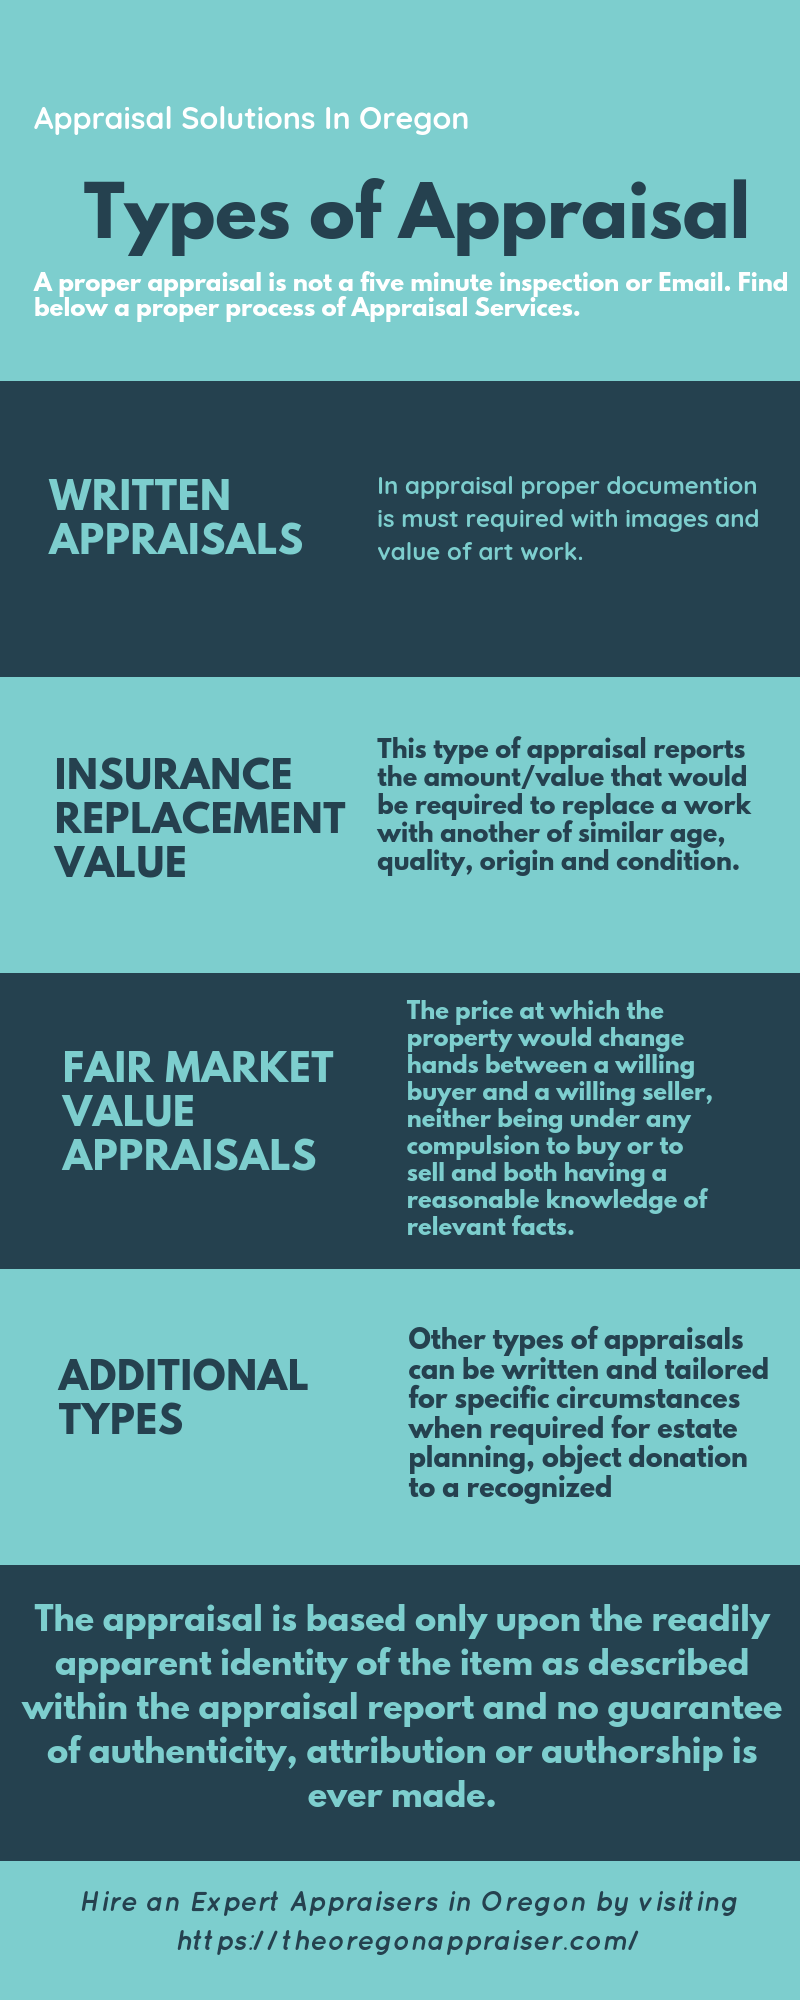 Appraisers Are Experts In Their Respective Area Of Specialization